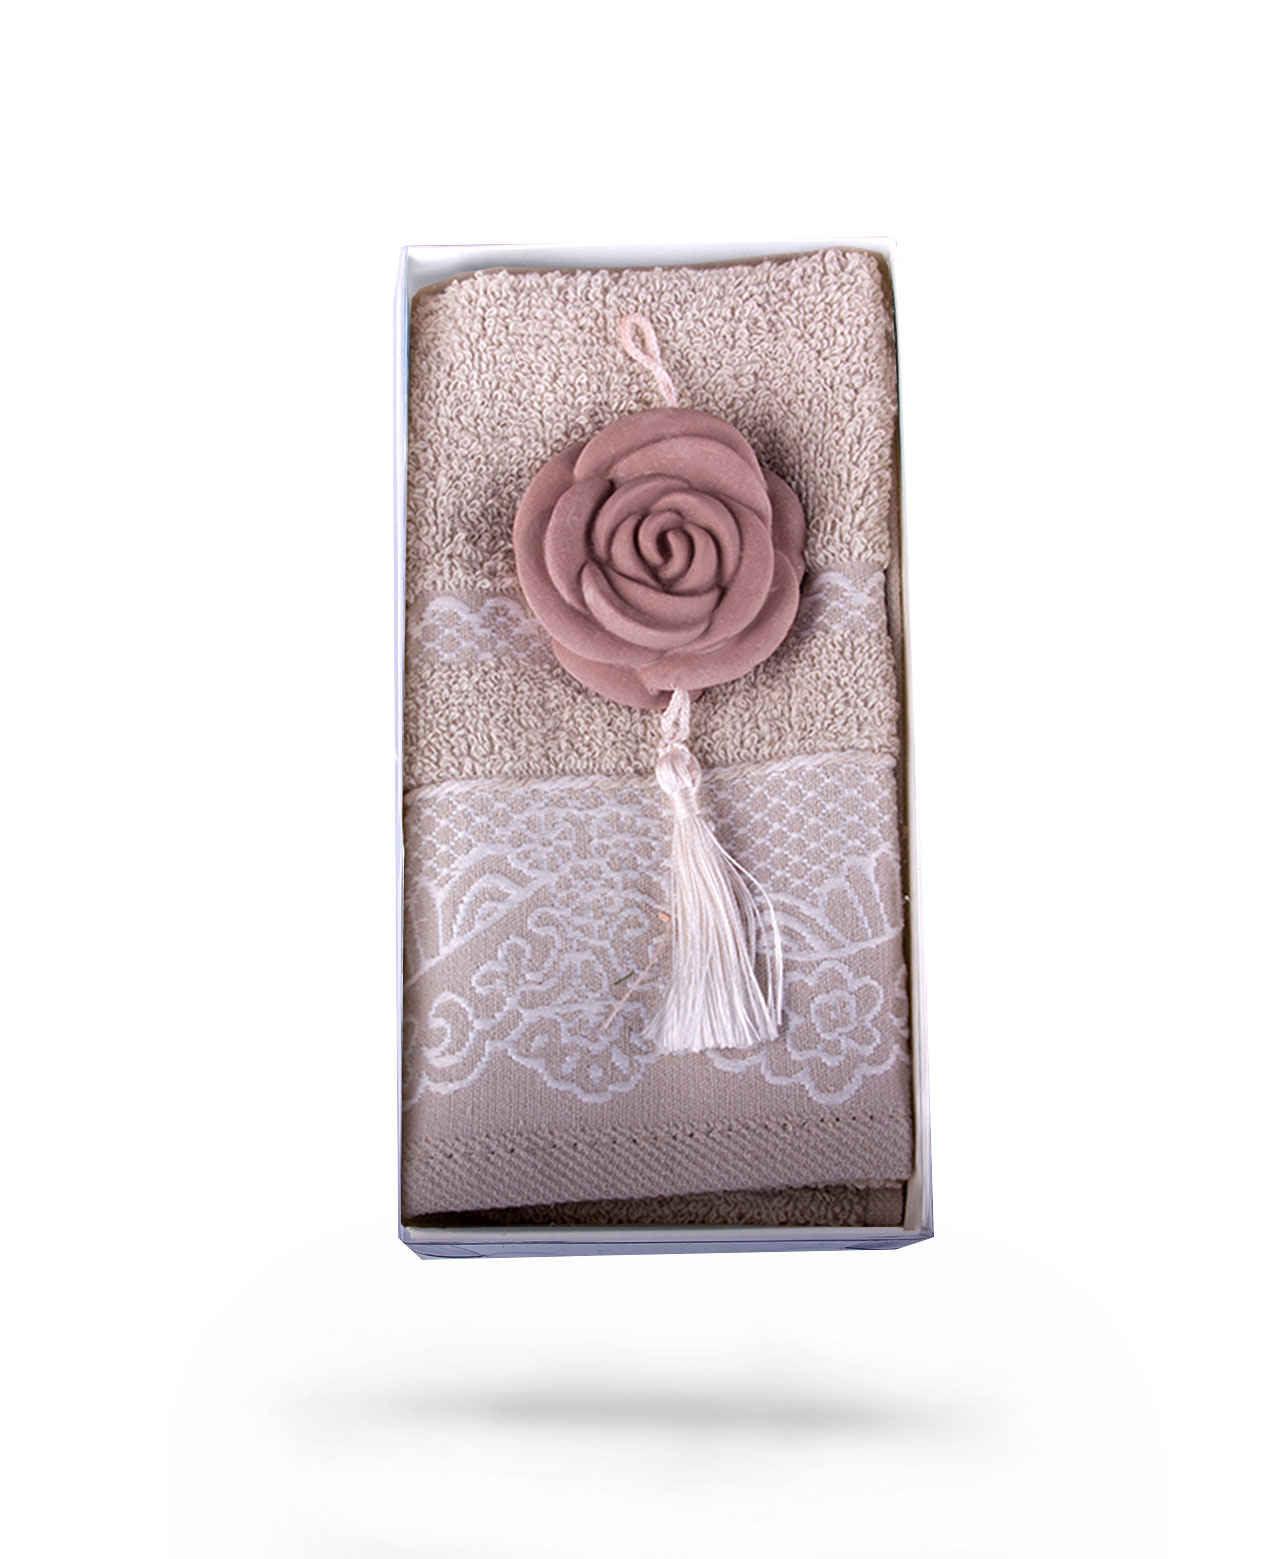 Beige Towel & Peach Scented Stone Wall Ornament Gift Set